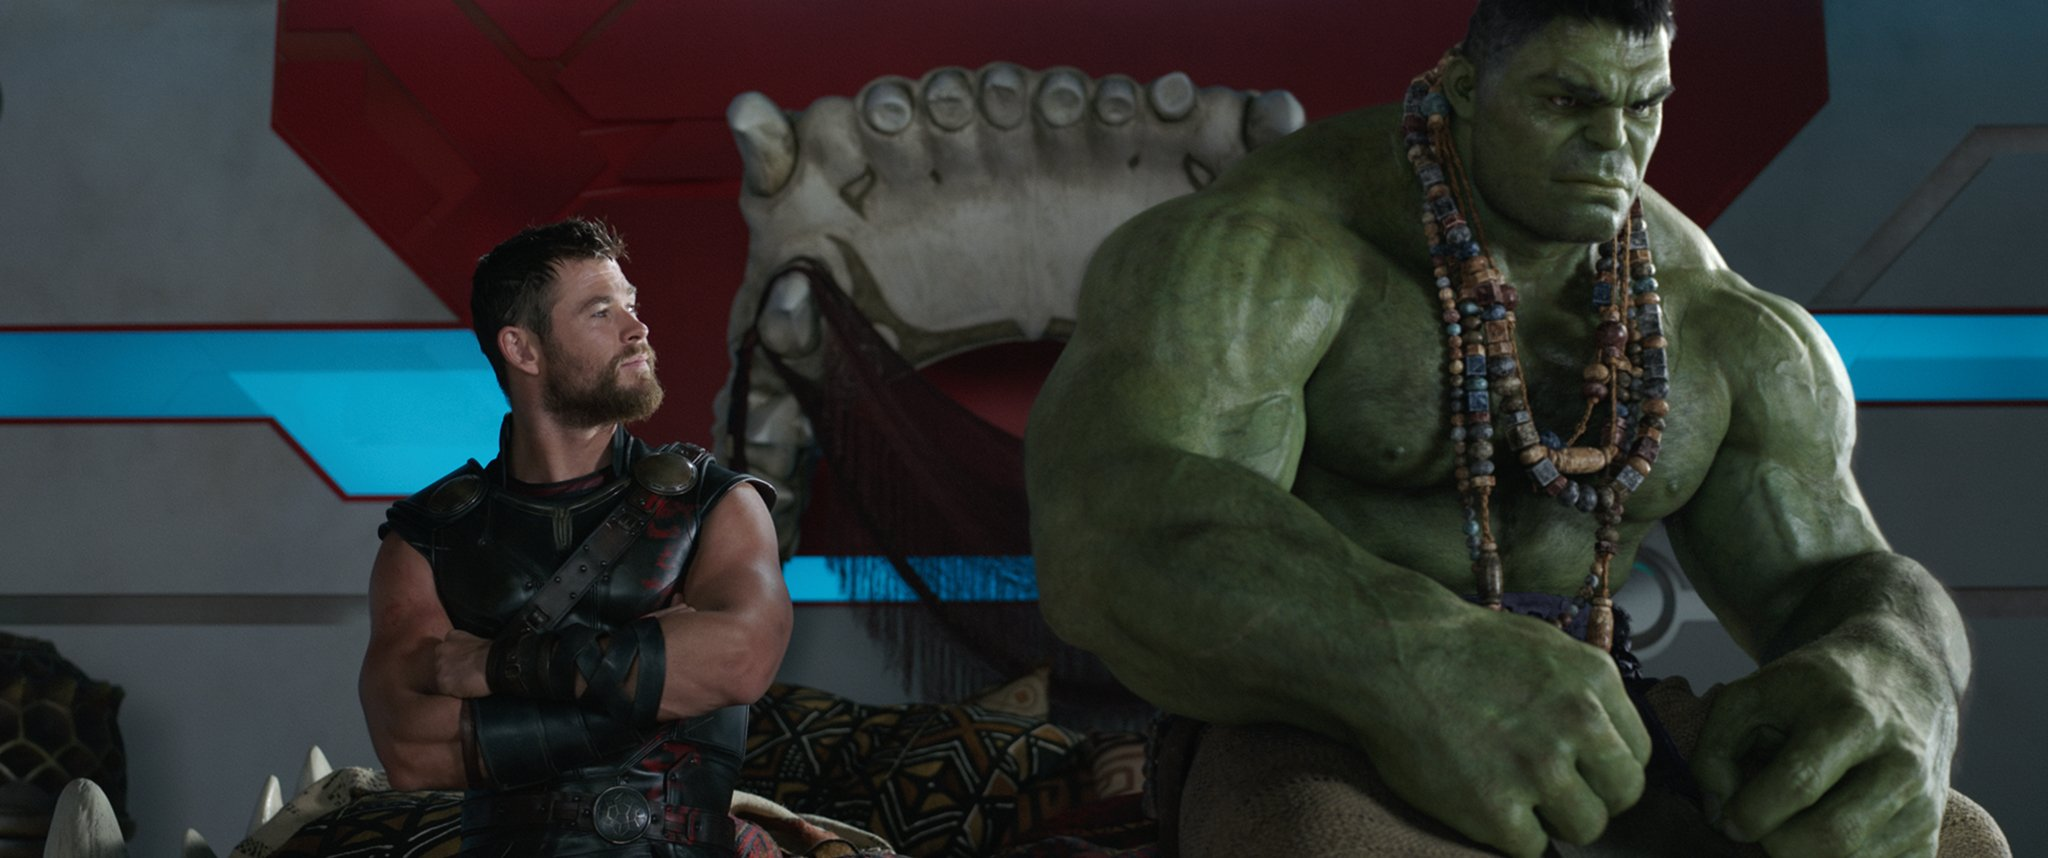 Thor: Ragnarok throws down the mighty movie hammer {Review}